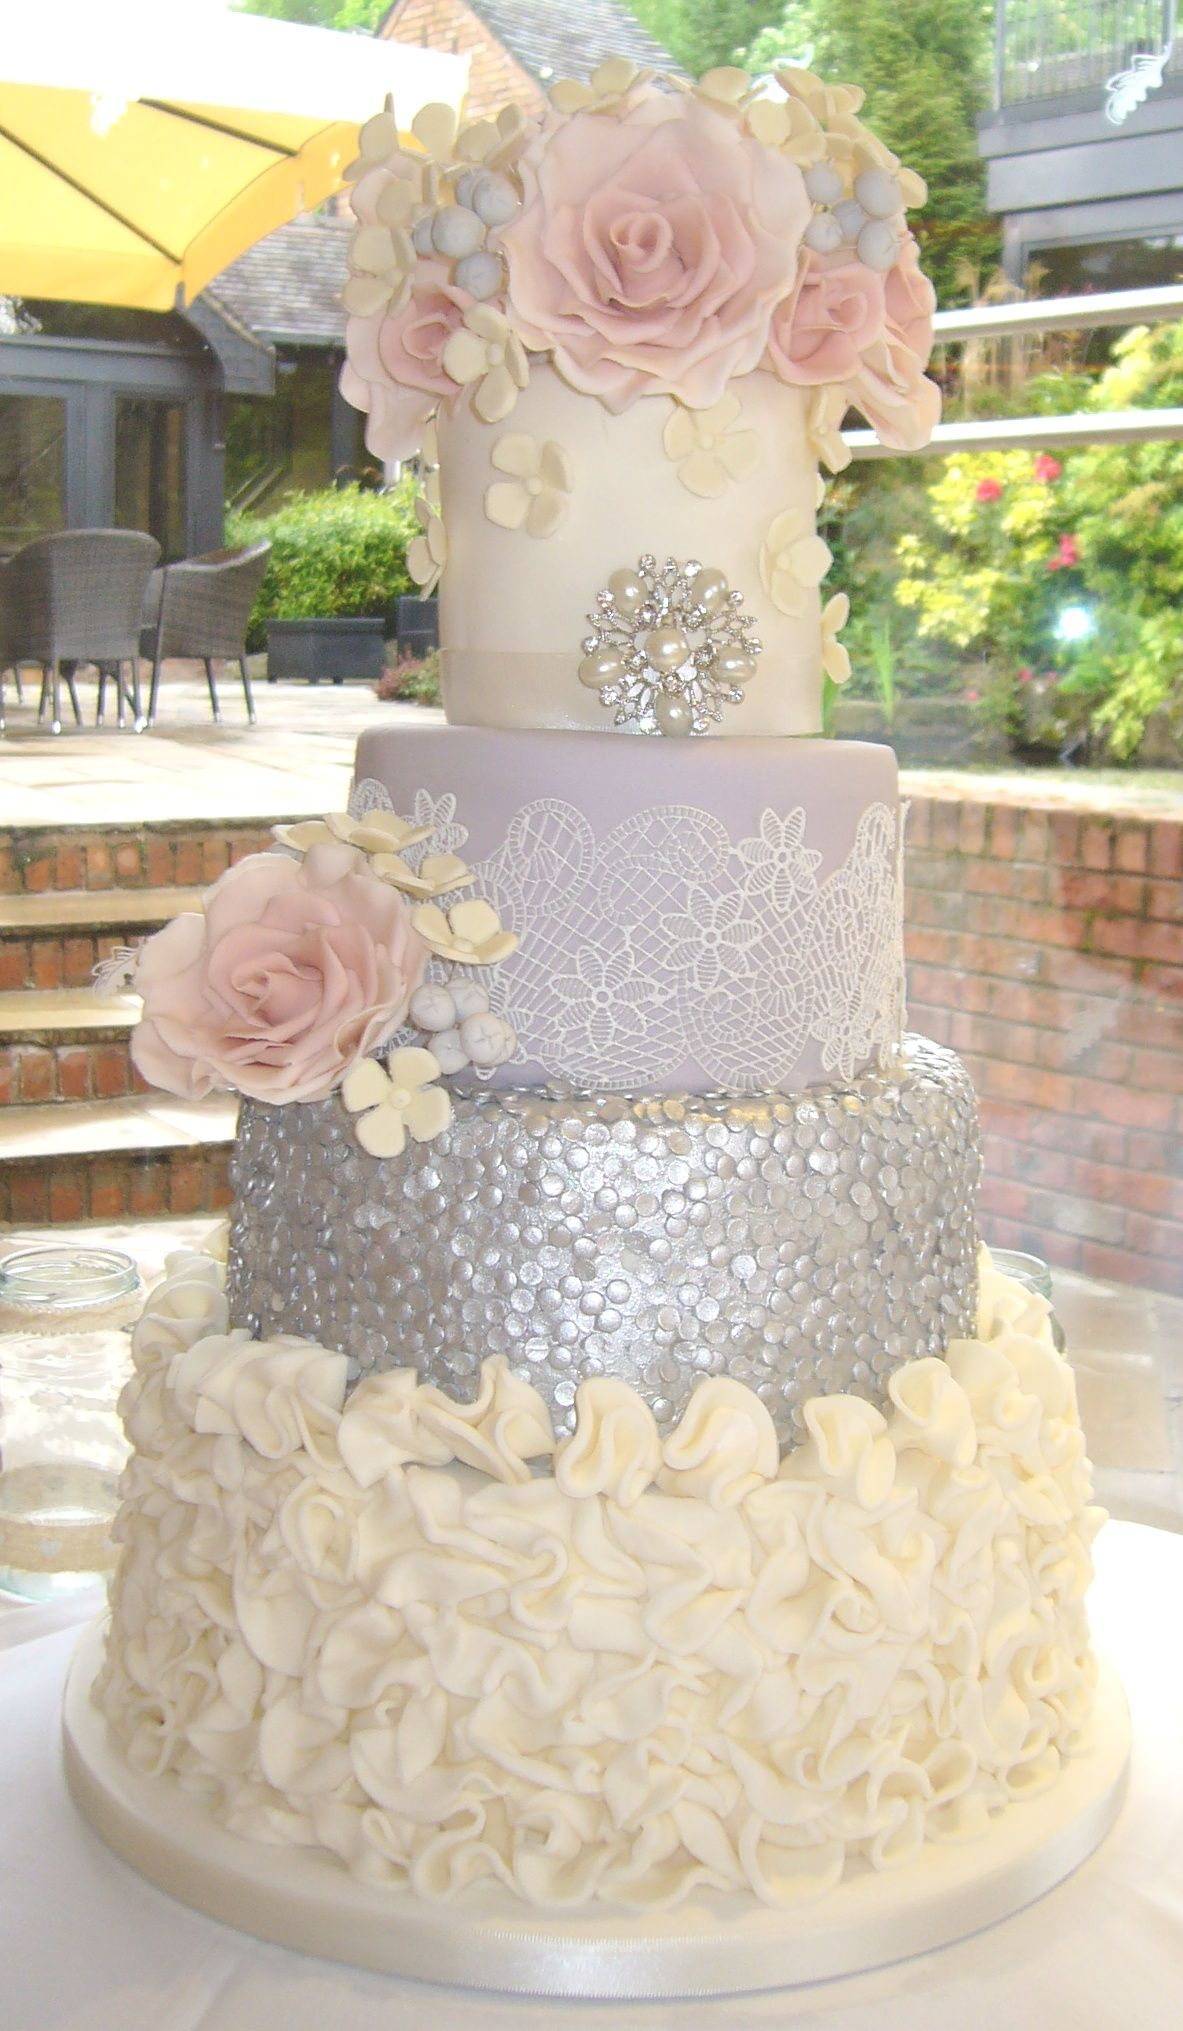 Four tier wedding cake in ivory and grey with silver sequins